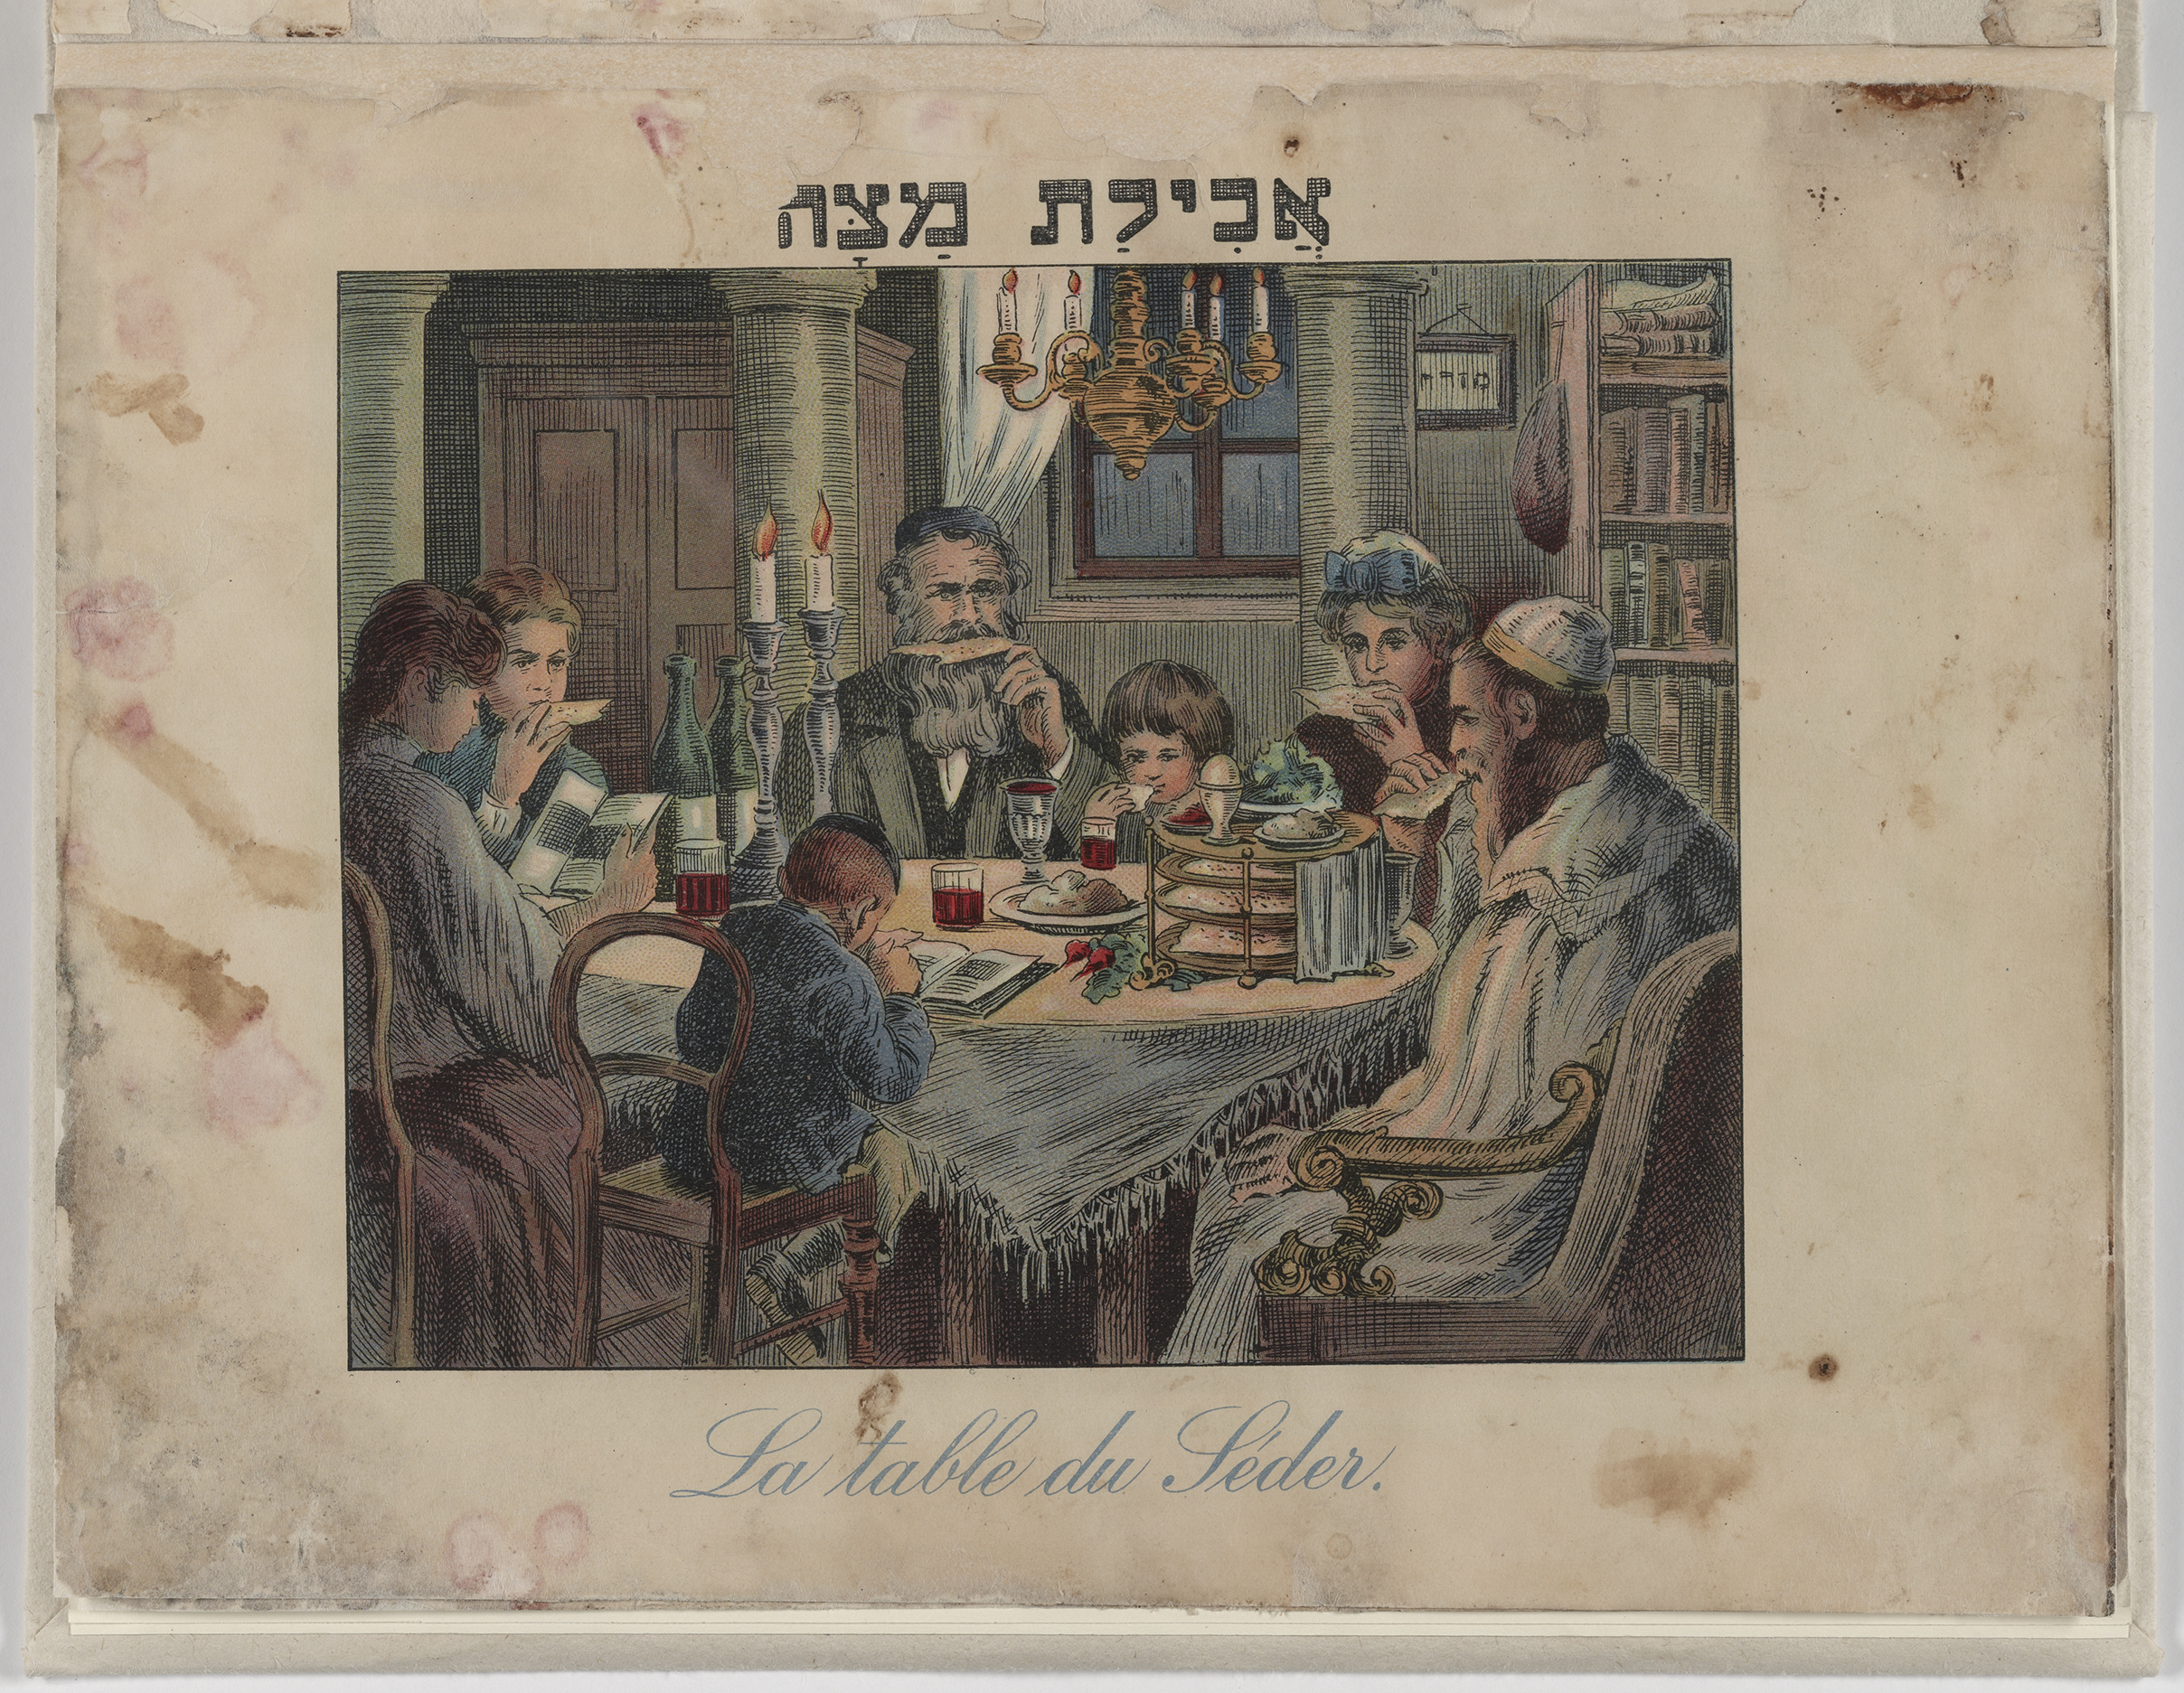 After Treatment: Passover Haggadah from Vienna, 1930